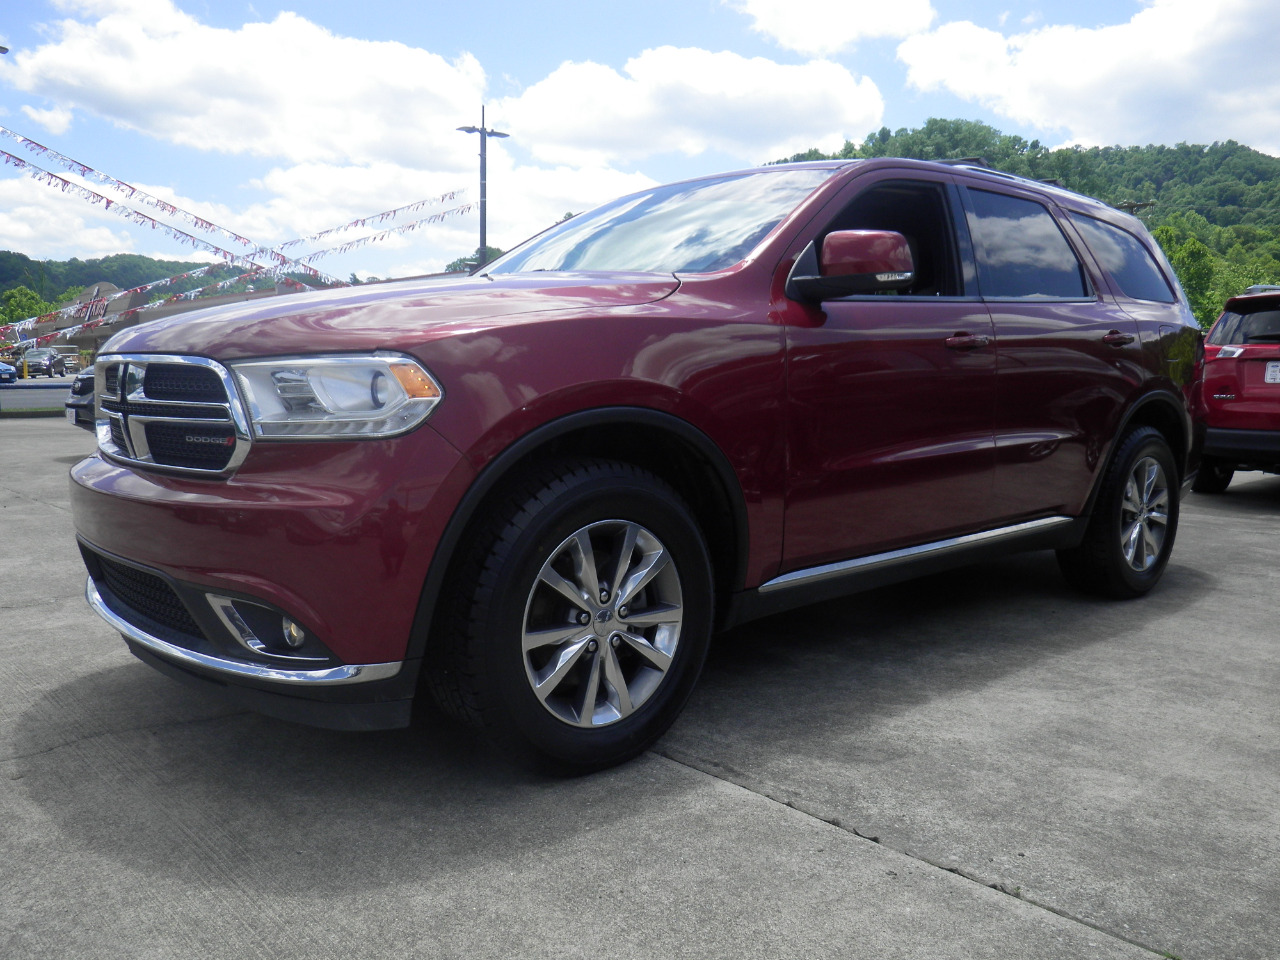 2014 Dodge Durango AWD 4dr Limited